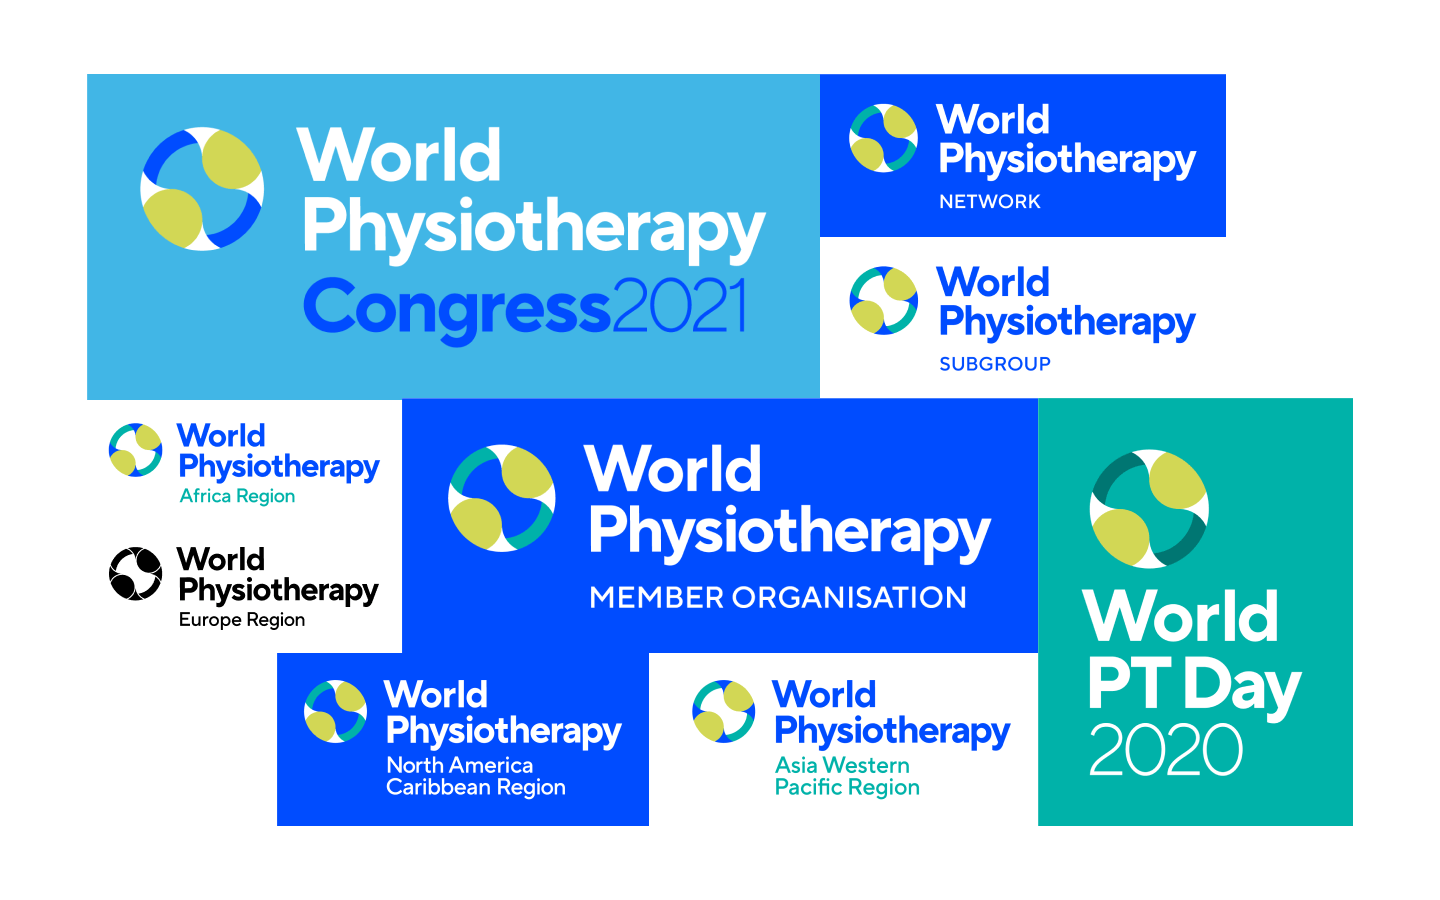 The World Physiotherapy sub-brand logos